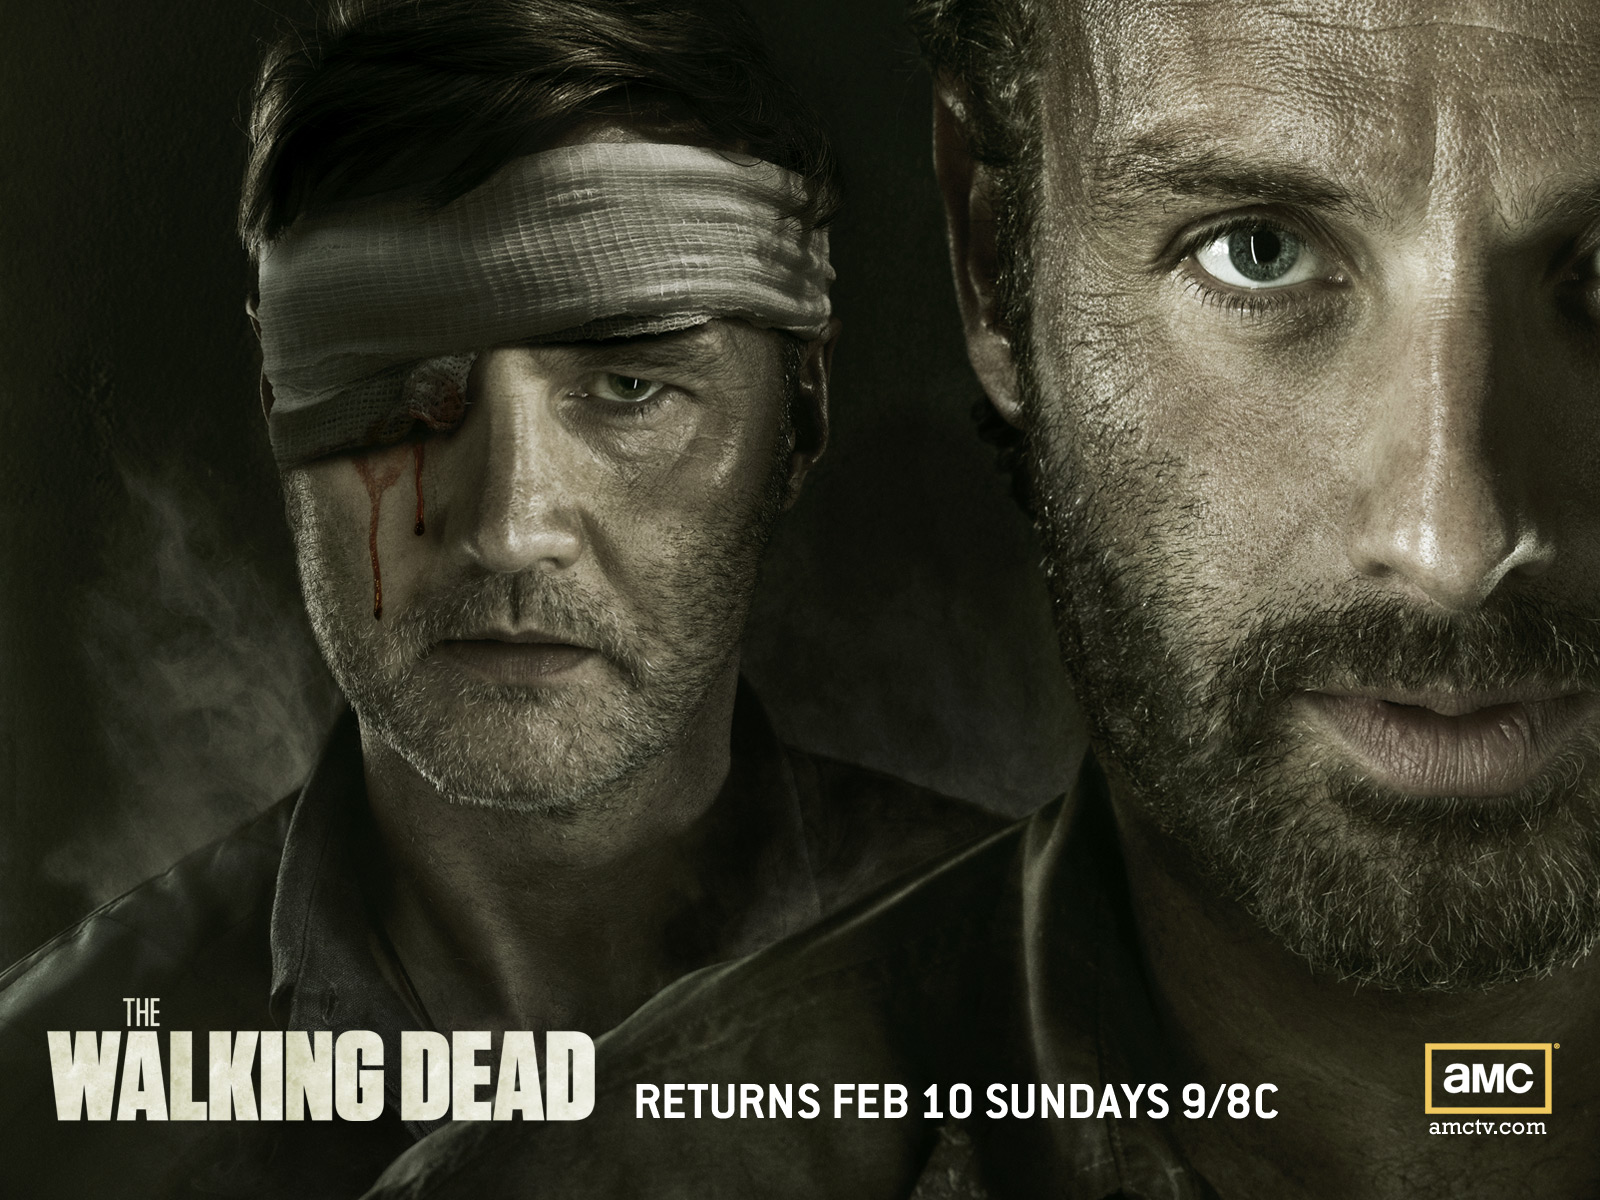 The Walking Dead - Downloads - AMC